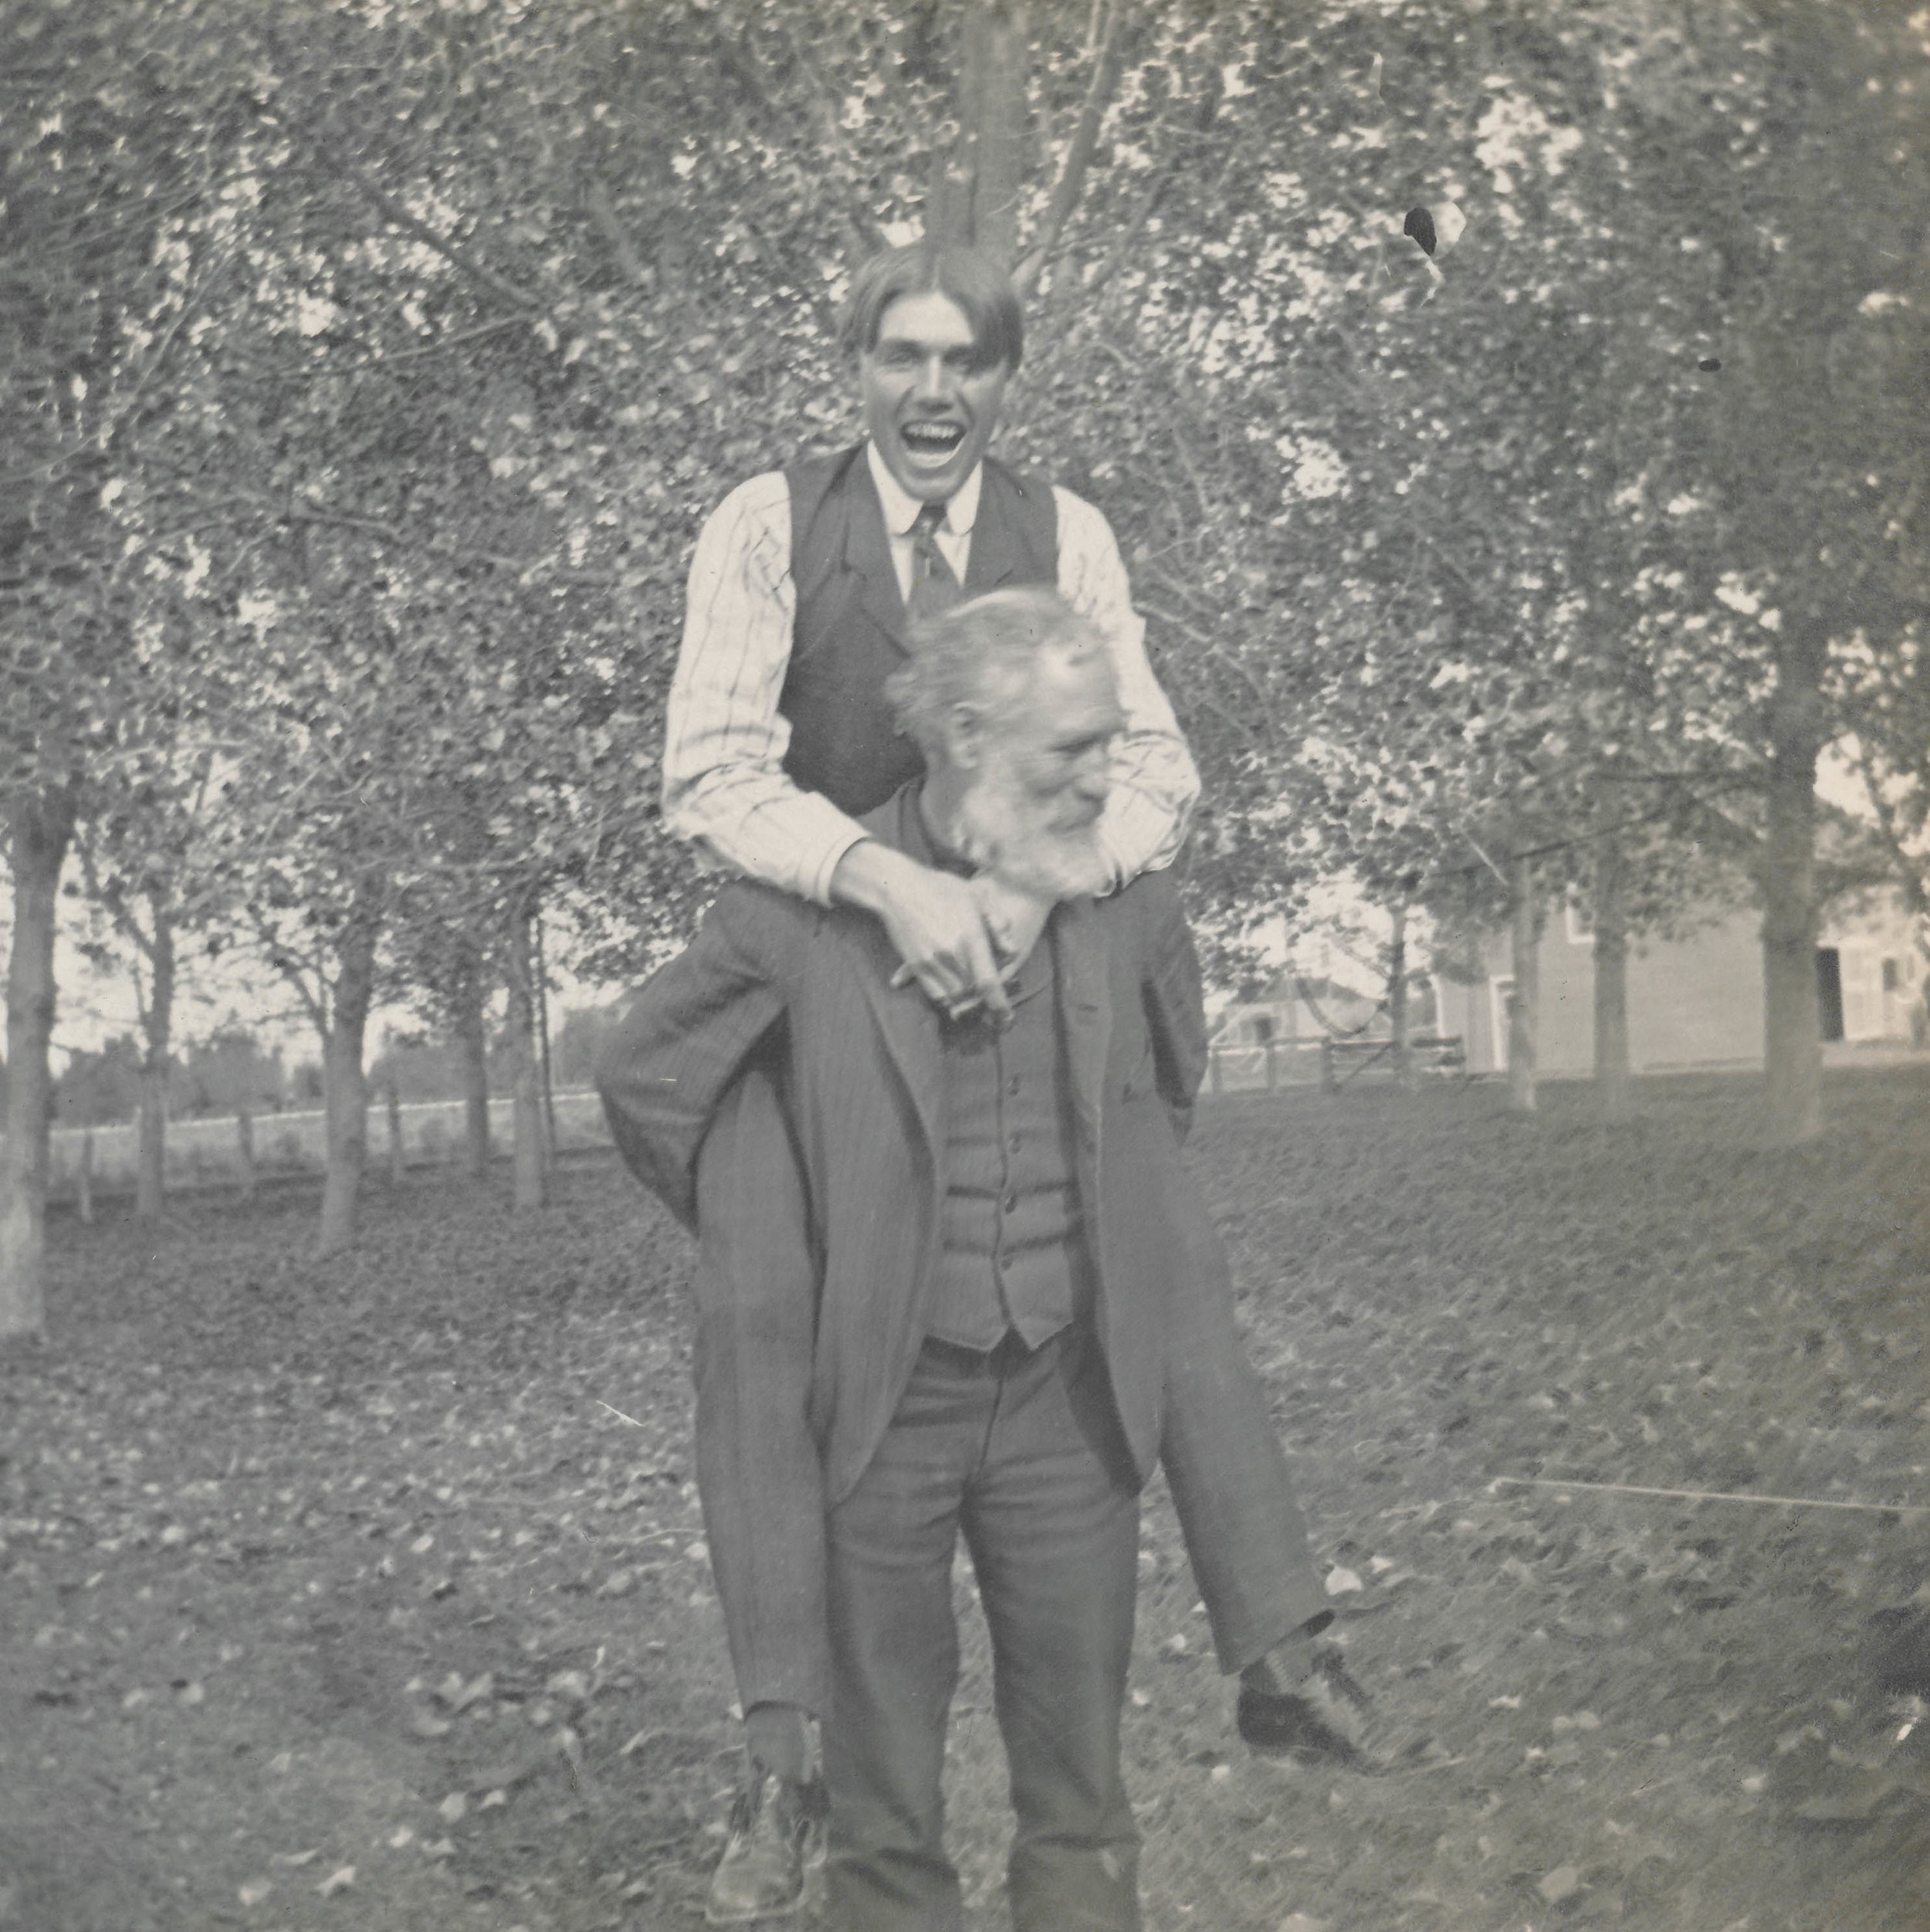 Young man rides piggyback on an old man  Undated.jpg